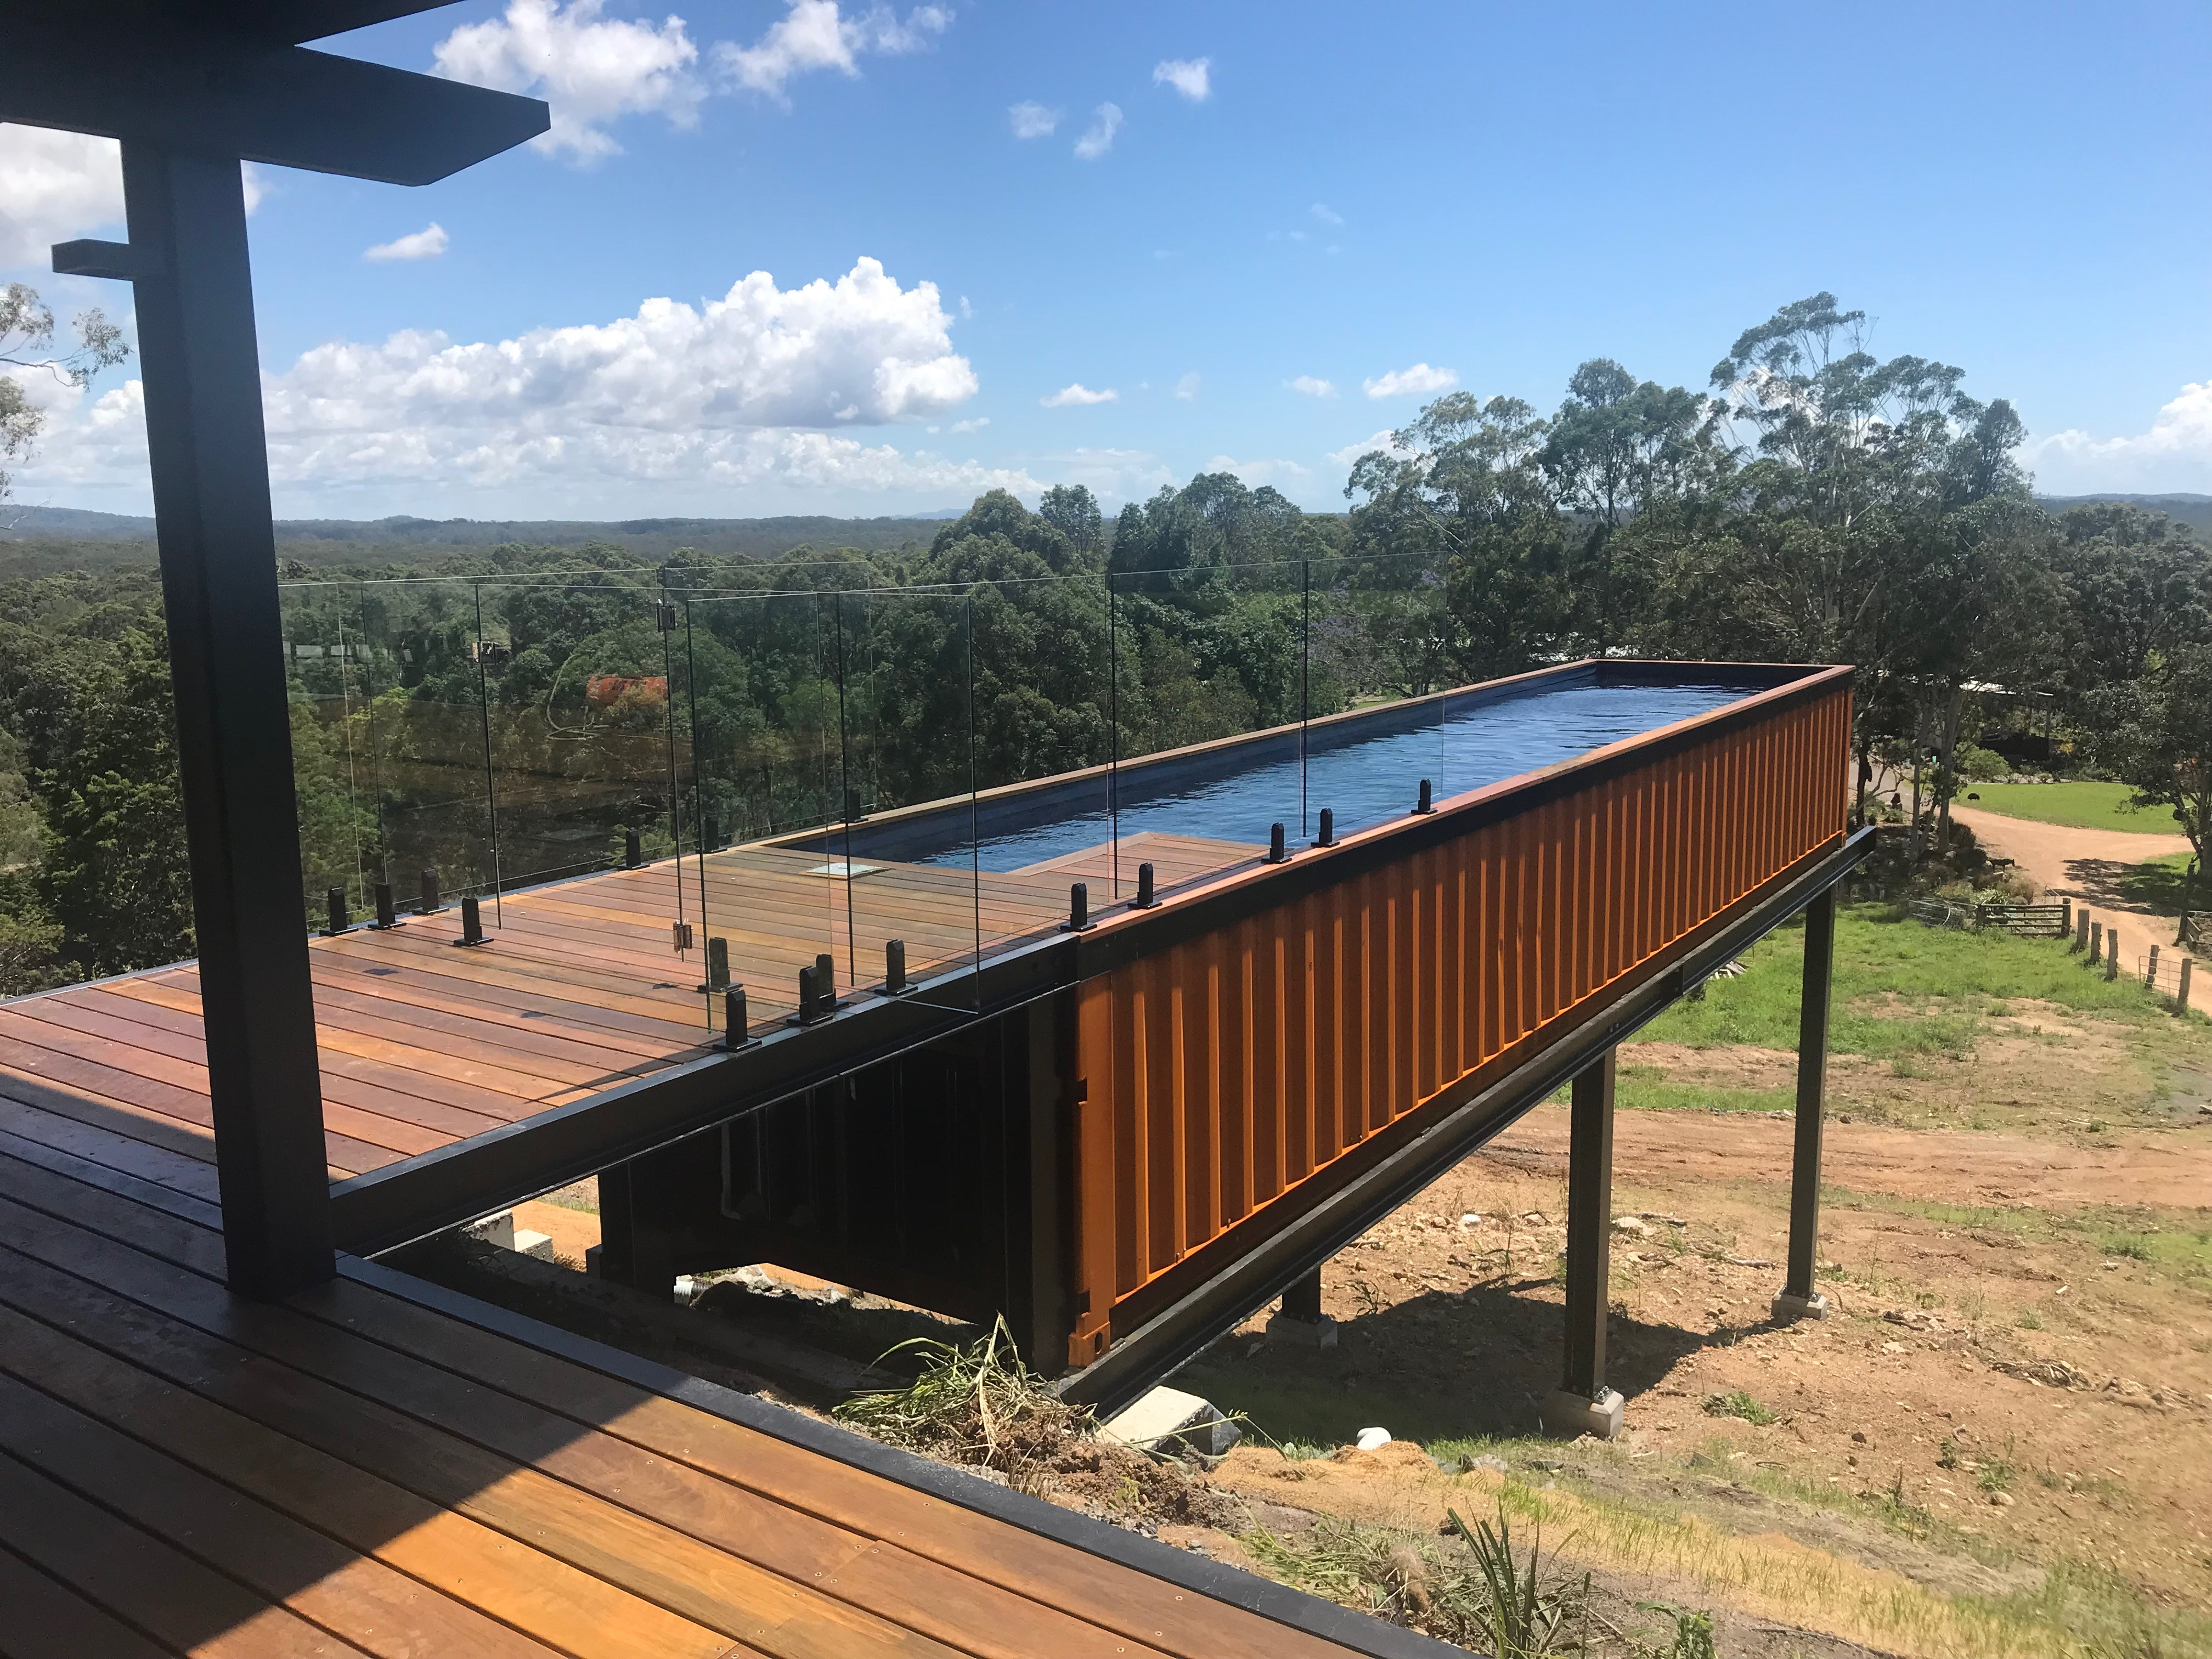 Tips to choose build and install a shipping container pool - Shipping container pools ...